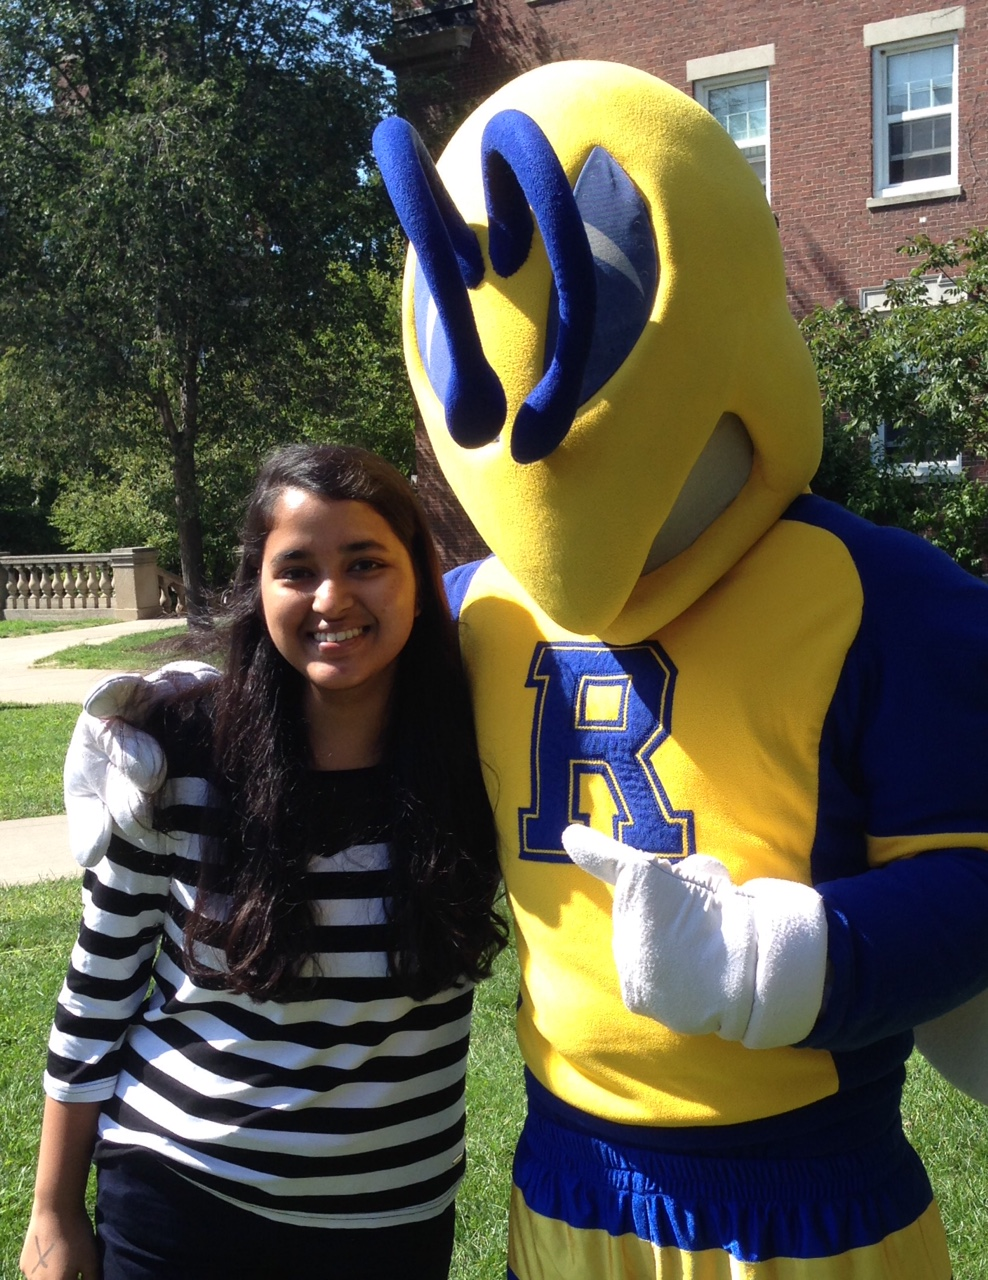 Me, posing with Rocky, the school mascot.